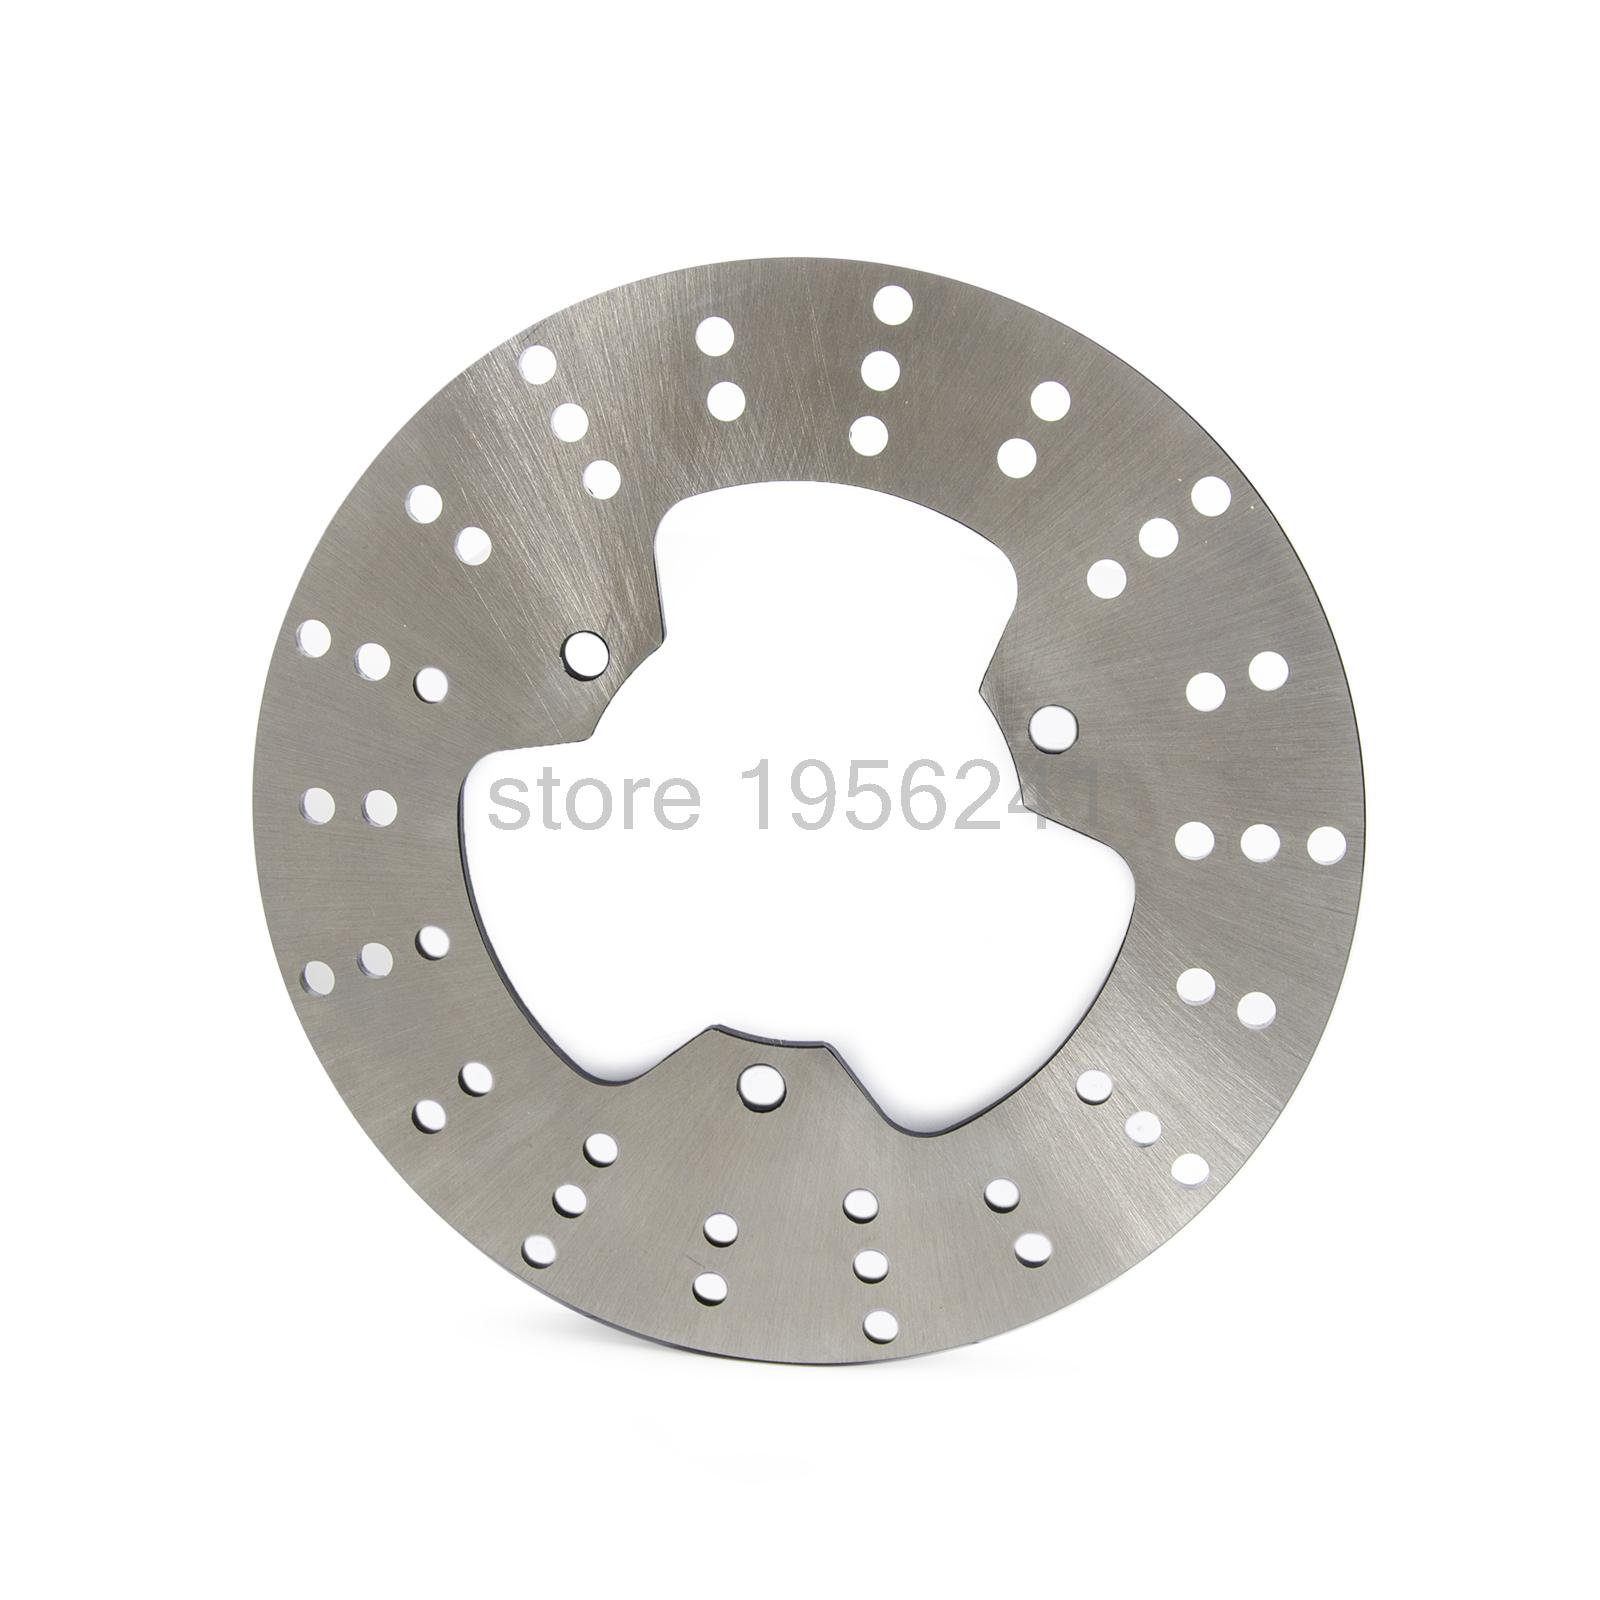 Motorcycle Rear  Rotor Brake Disc For Yamaha TZR125 TZR150 TZR250 TDR125 TDR250 FZR250R TZ250 FX250 SDR200 NEW<br>